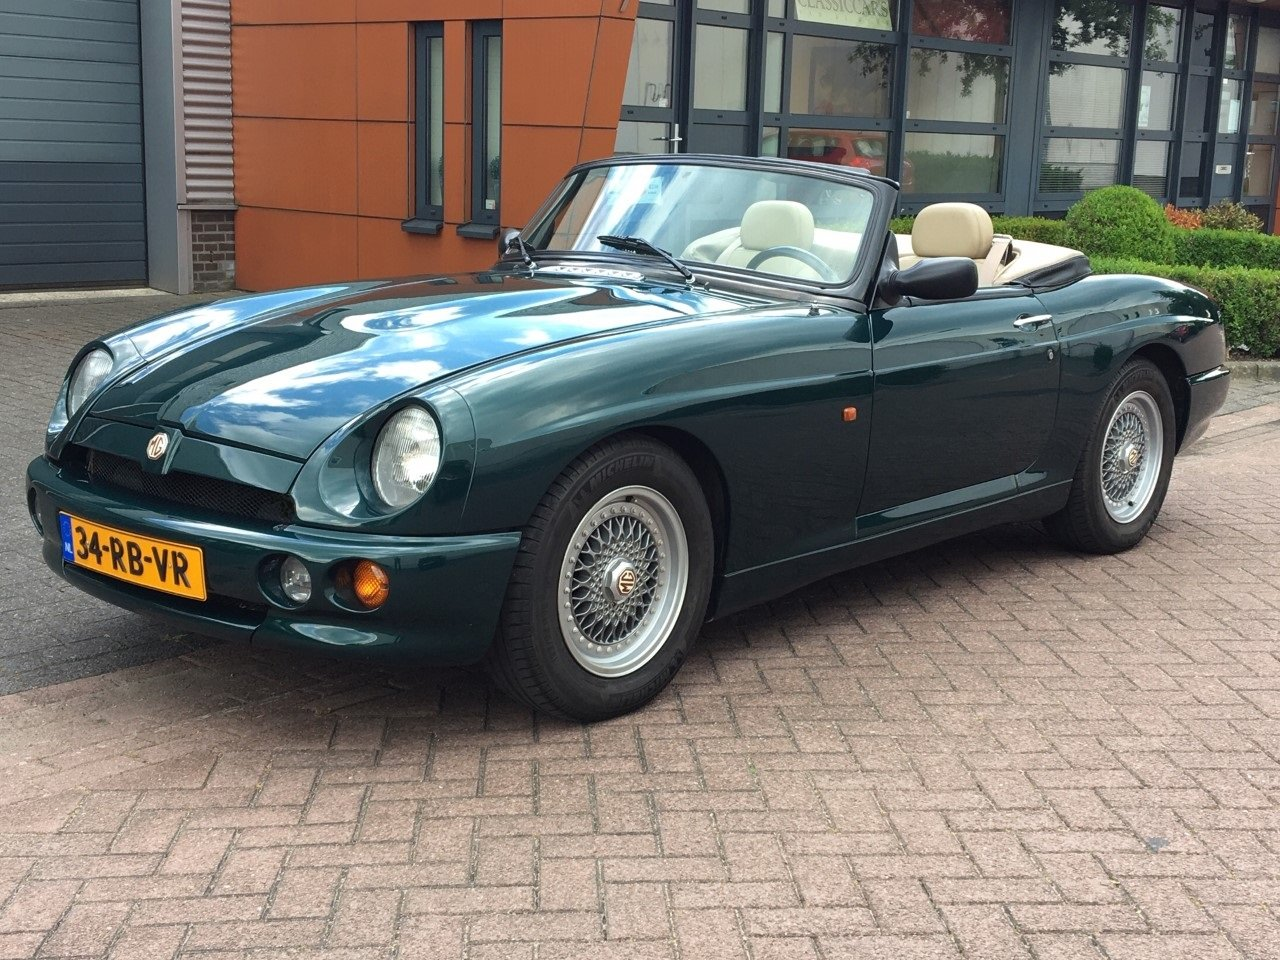 1993 MG RV8 LHD British Racing Green For Sale (picture 1 of 6)